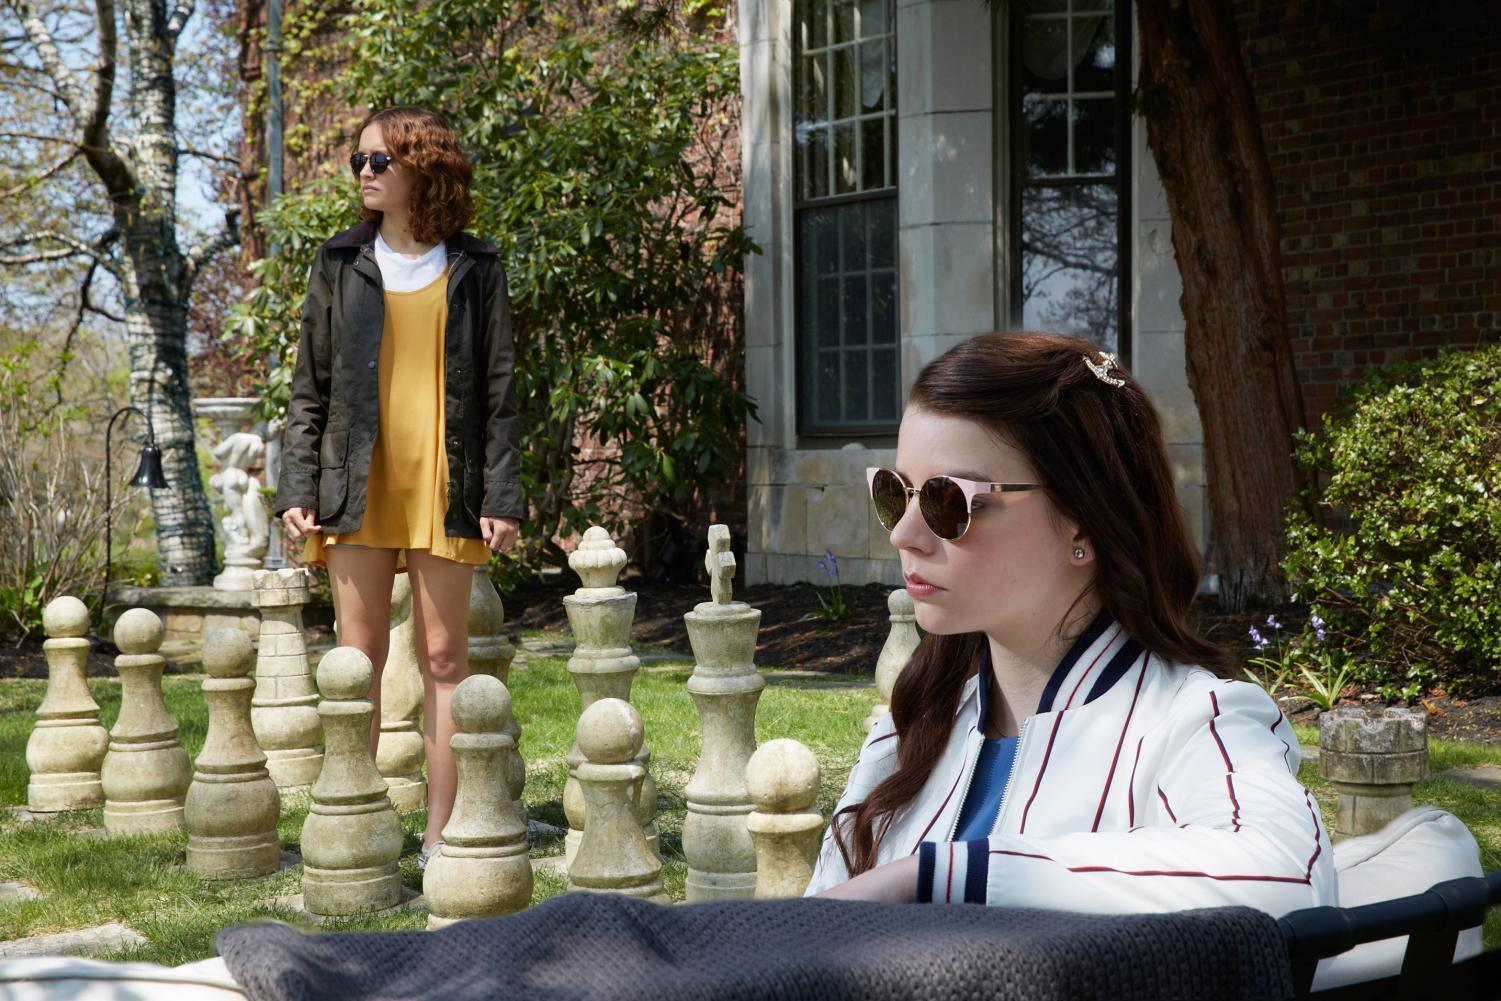 """Scene from the film """"Thoroughbreds"""" featuring Lily (Ana Taylor-Joy) and Amanda (Olivia Cooke)."""